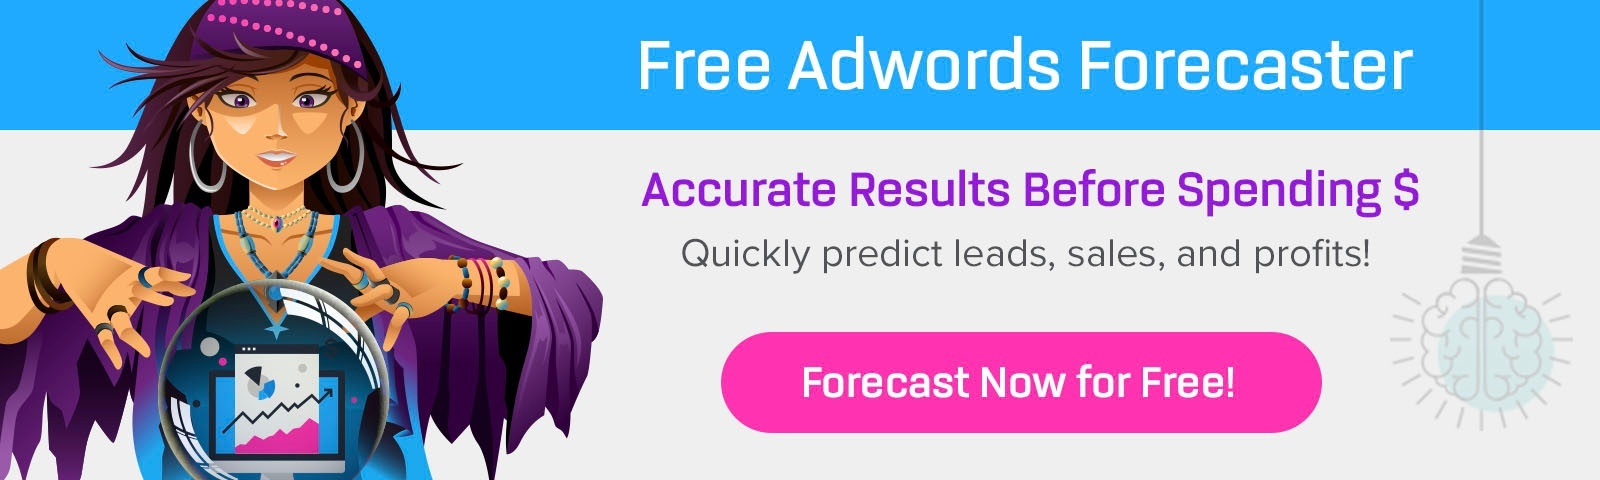 Adwords Forecaster Tool